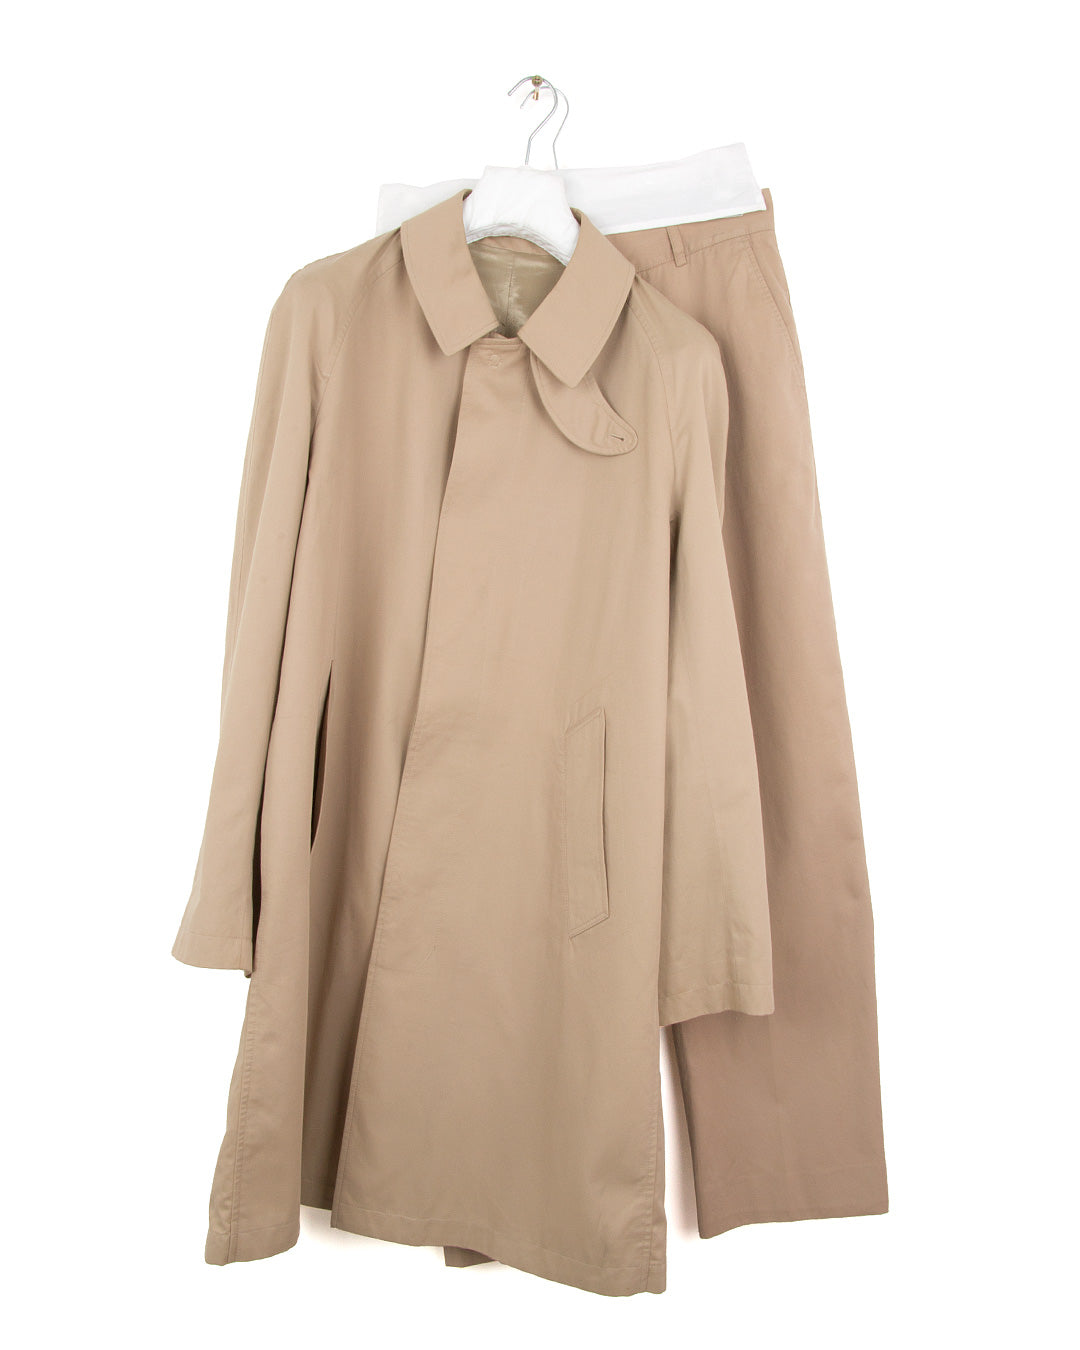 2003 S/S BAL COLLAR MAC COAT IN TWILL COTTON